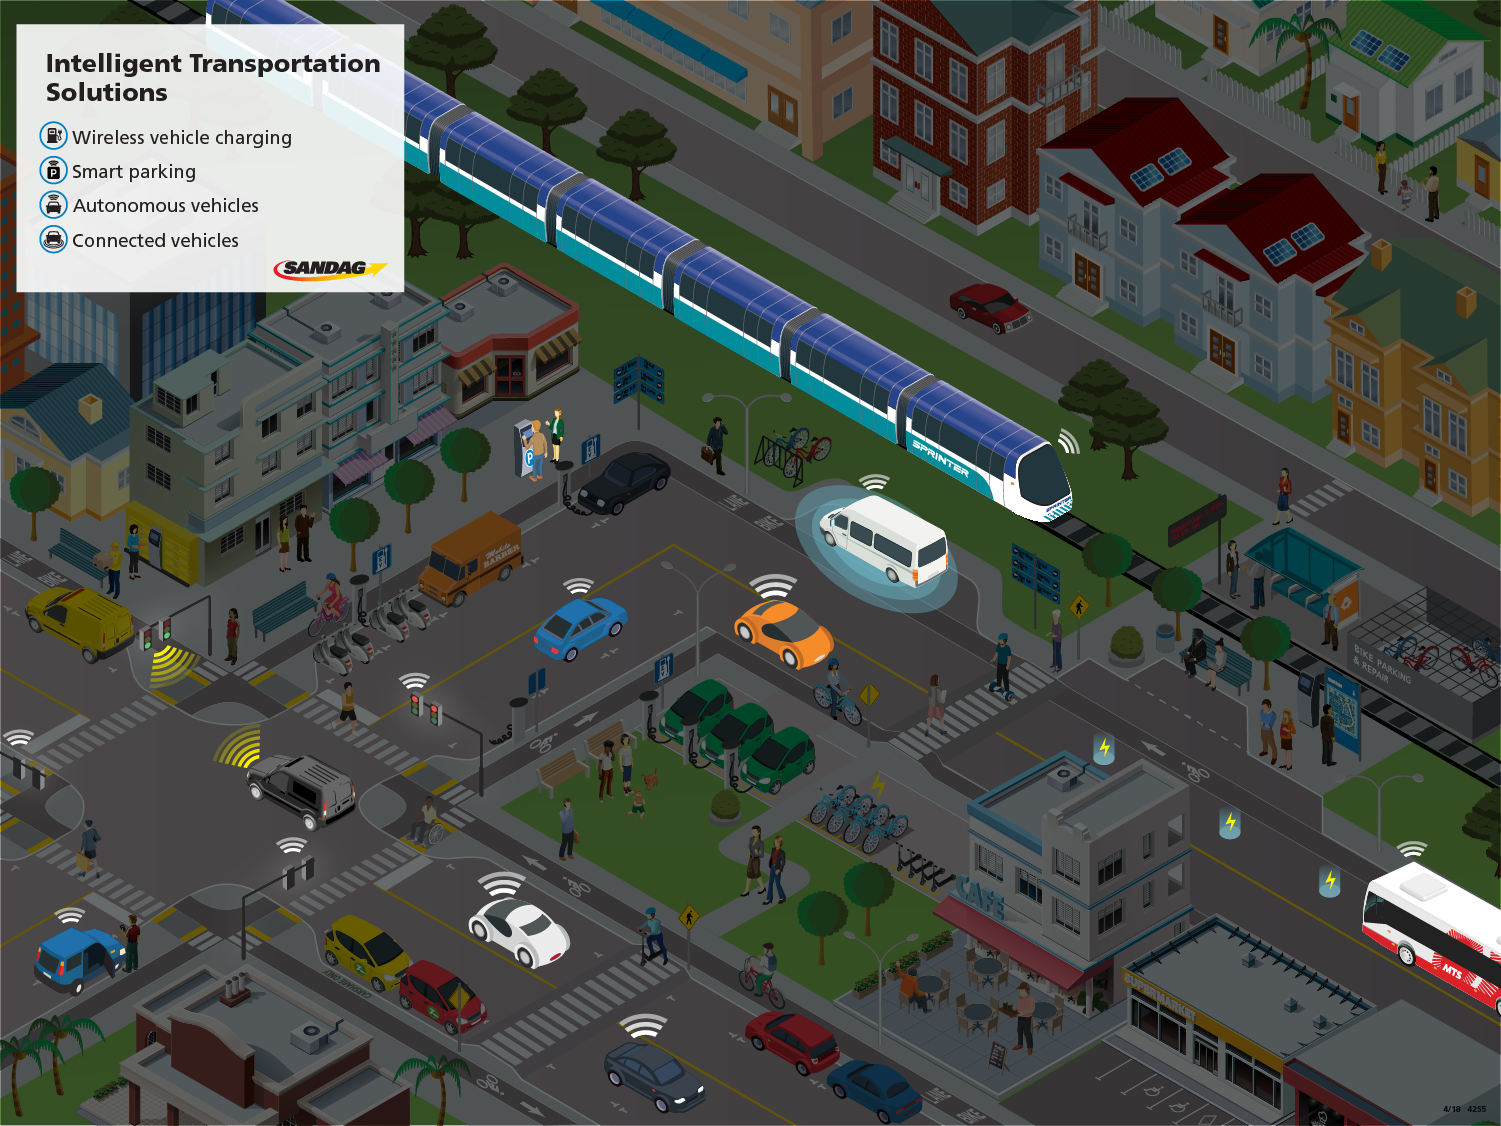 The Intelligent Transportation Systems layer depicts how technology can be leveraged to enhance mobility while fostering a safe and convenient environment for all mobility hub users. Example technologies include wireless in-road vehicle charging, smart parking kiosks that facilitate reservation and mobile payment, and autonomous and connected vehicles that communicate with each other and the surrounding infrastructure.